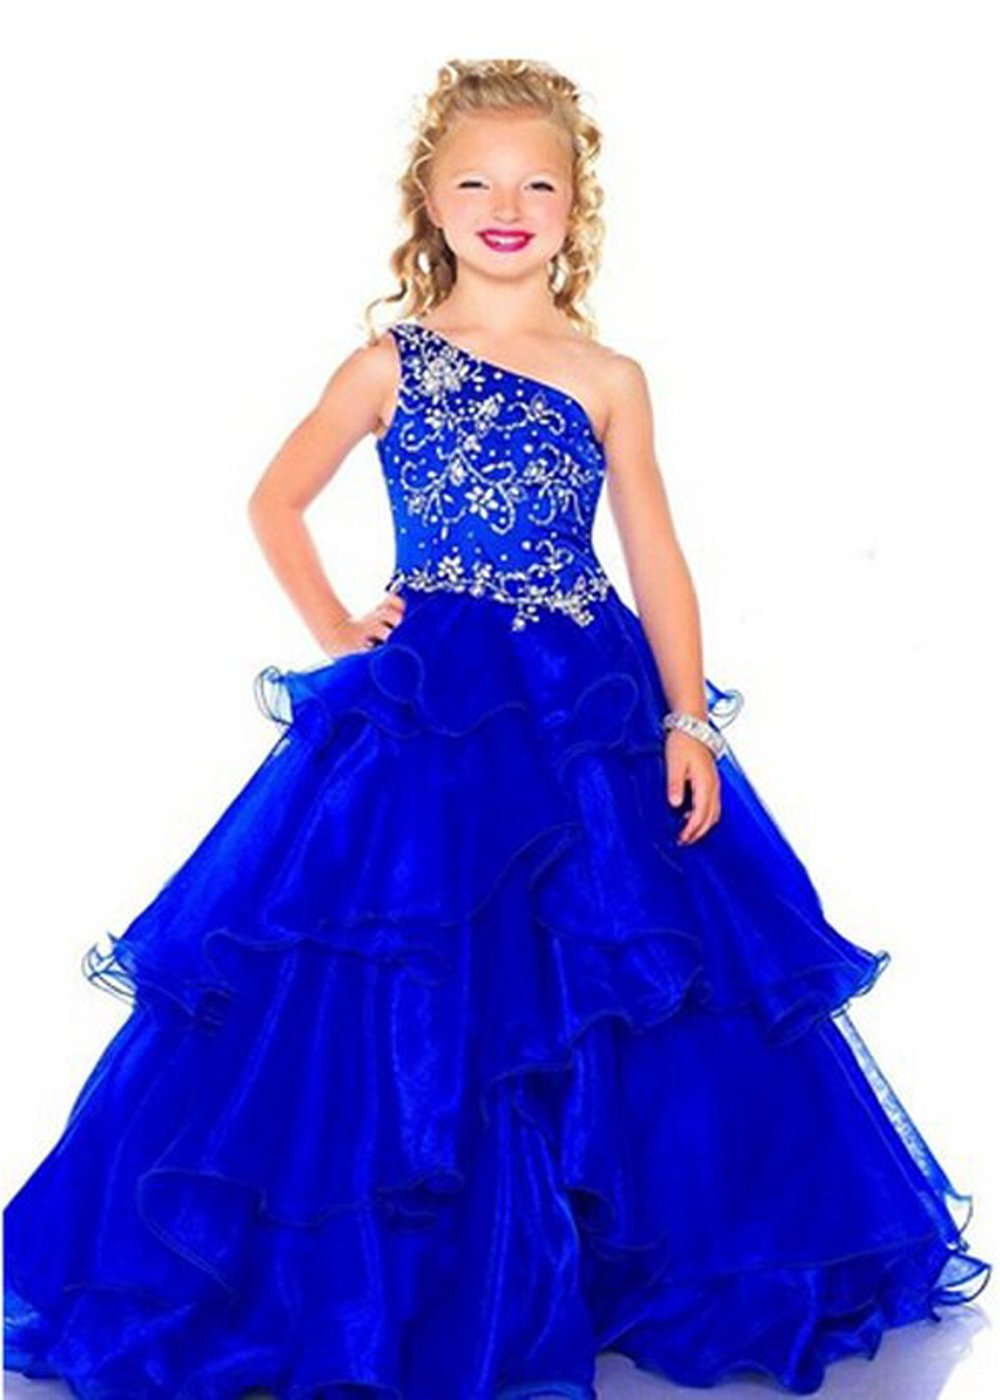 XianNv Flower Girl One Shoulder Pageant Dresses Glitz Red Gowns Floor Length (8, Royal Blue)